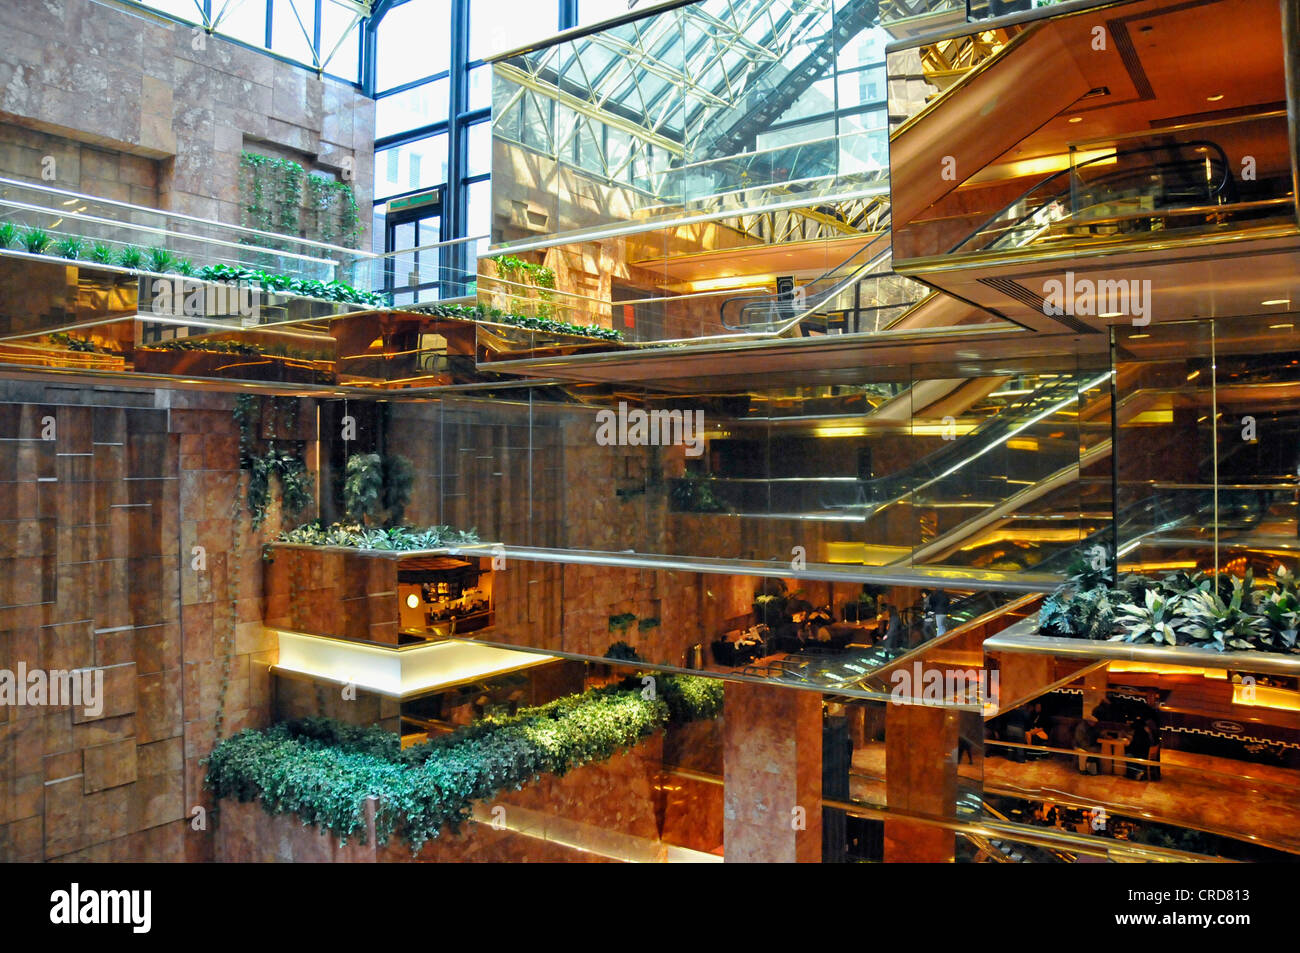 atrium of the Trump Tower at the 5th Avenue, USA, New York City, Manhattan - Stock Image